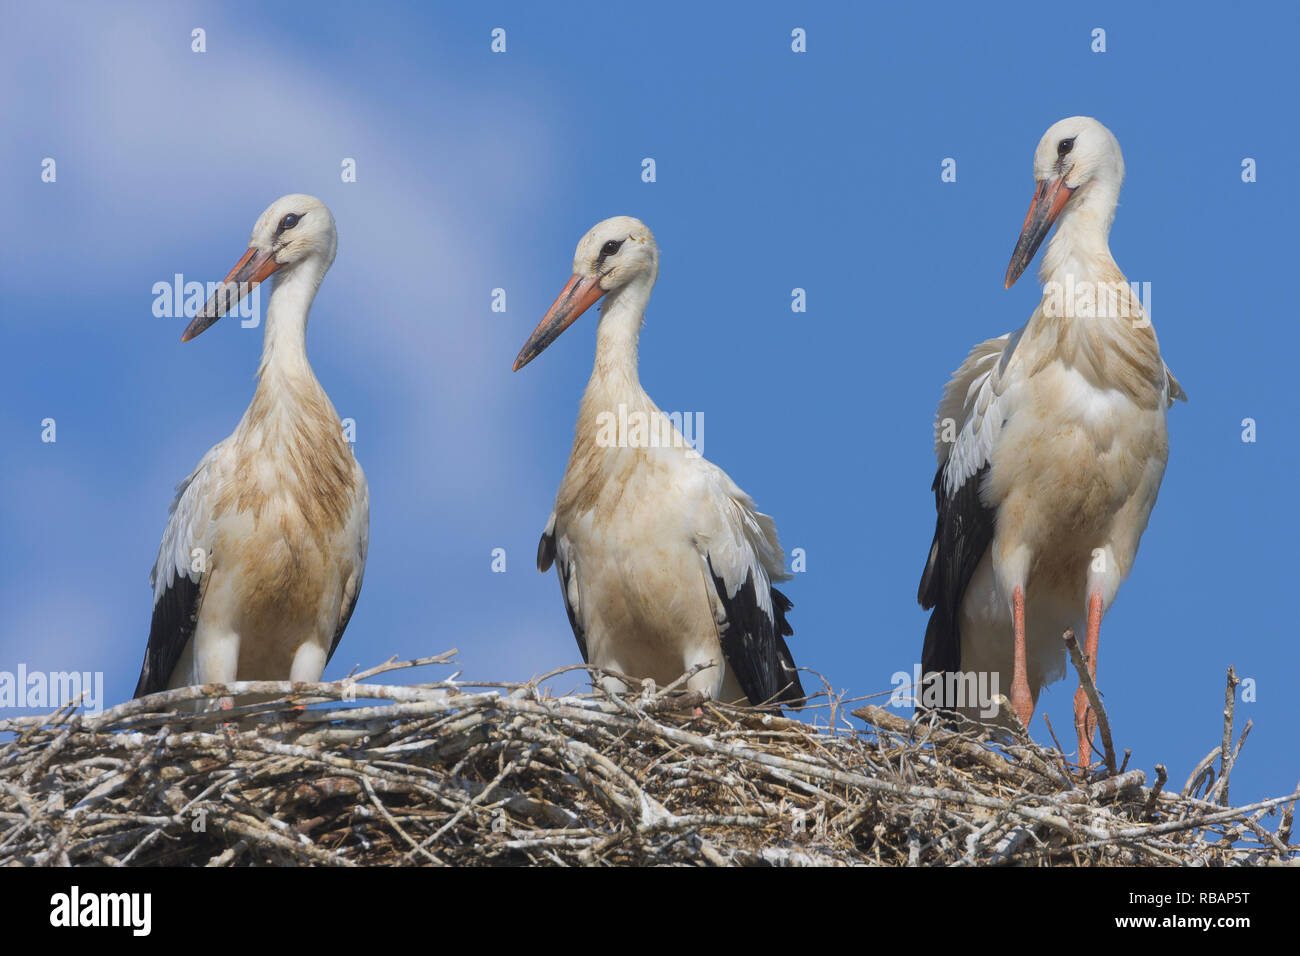 White Stork (Ciconia ciconia), three juveniles ready to fledge standing on the edge of the nest - Stock Image